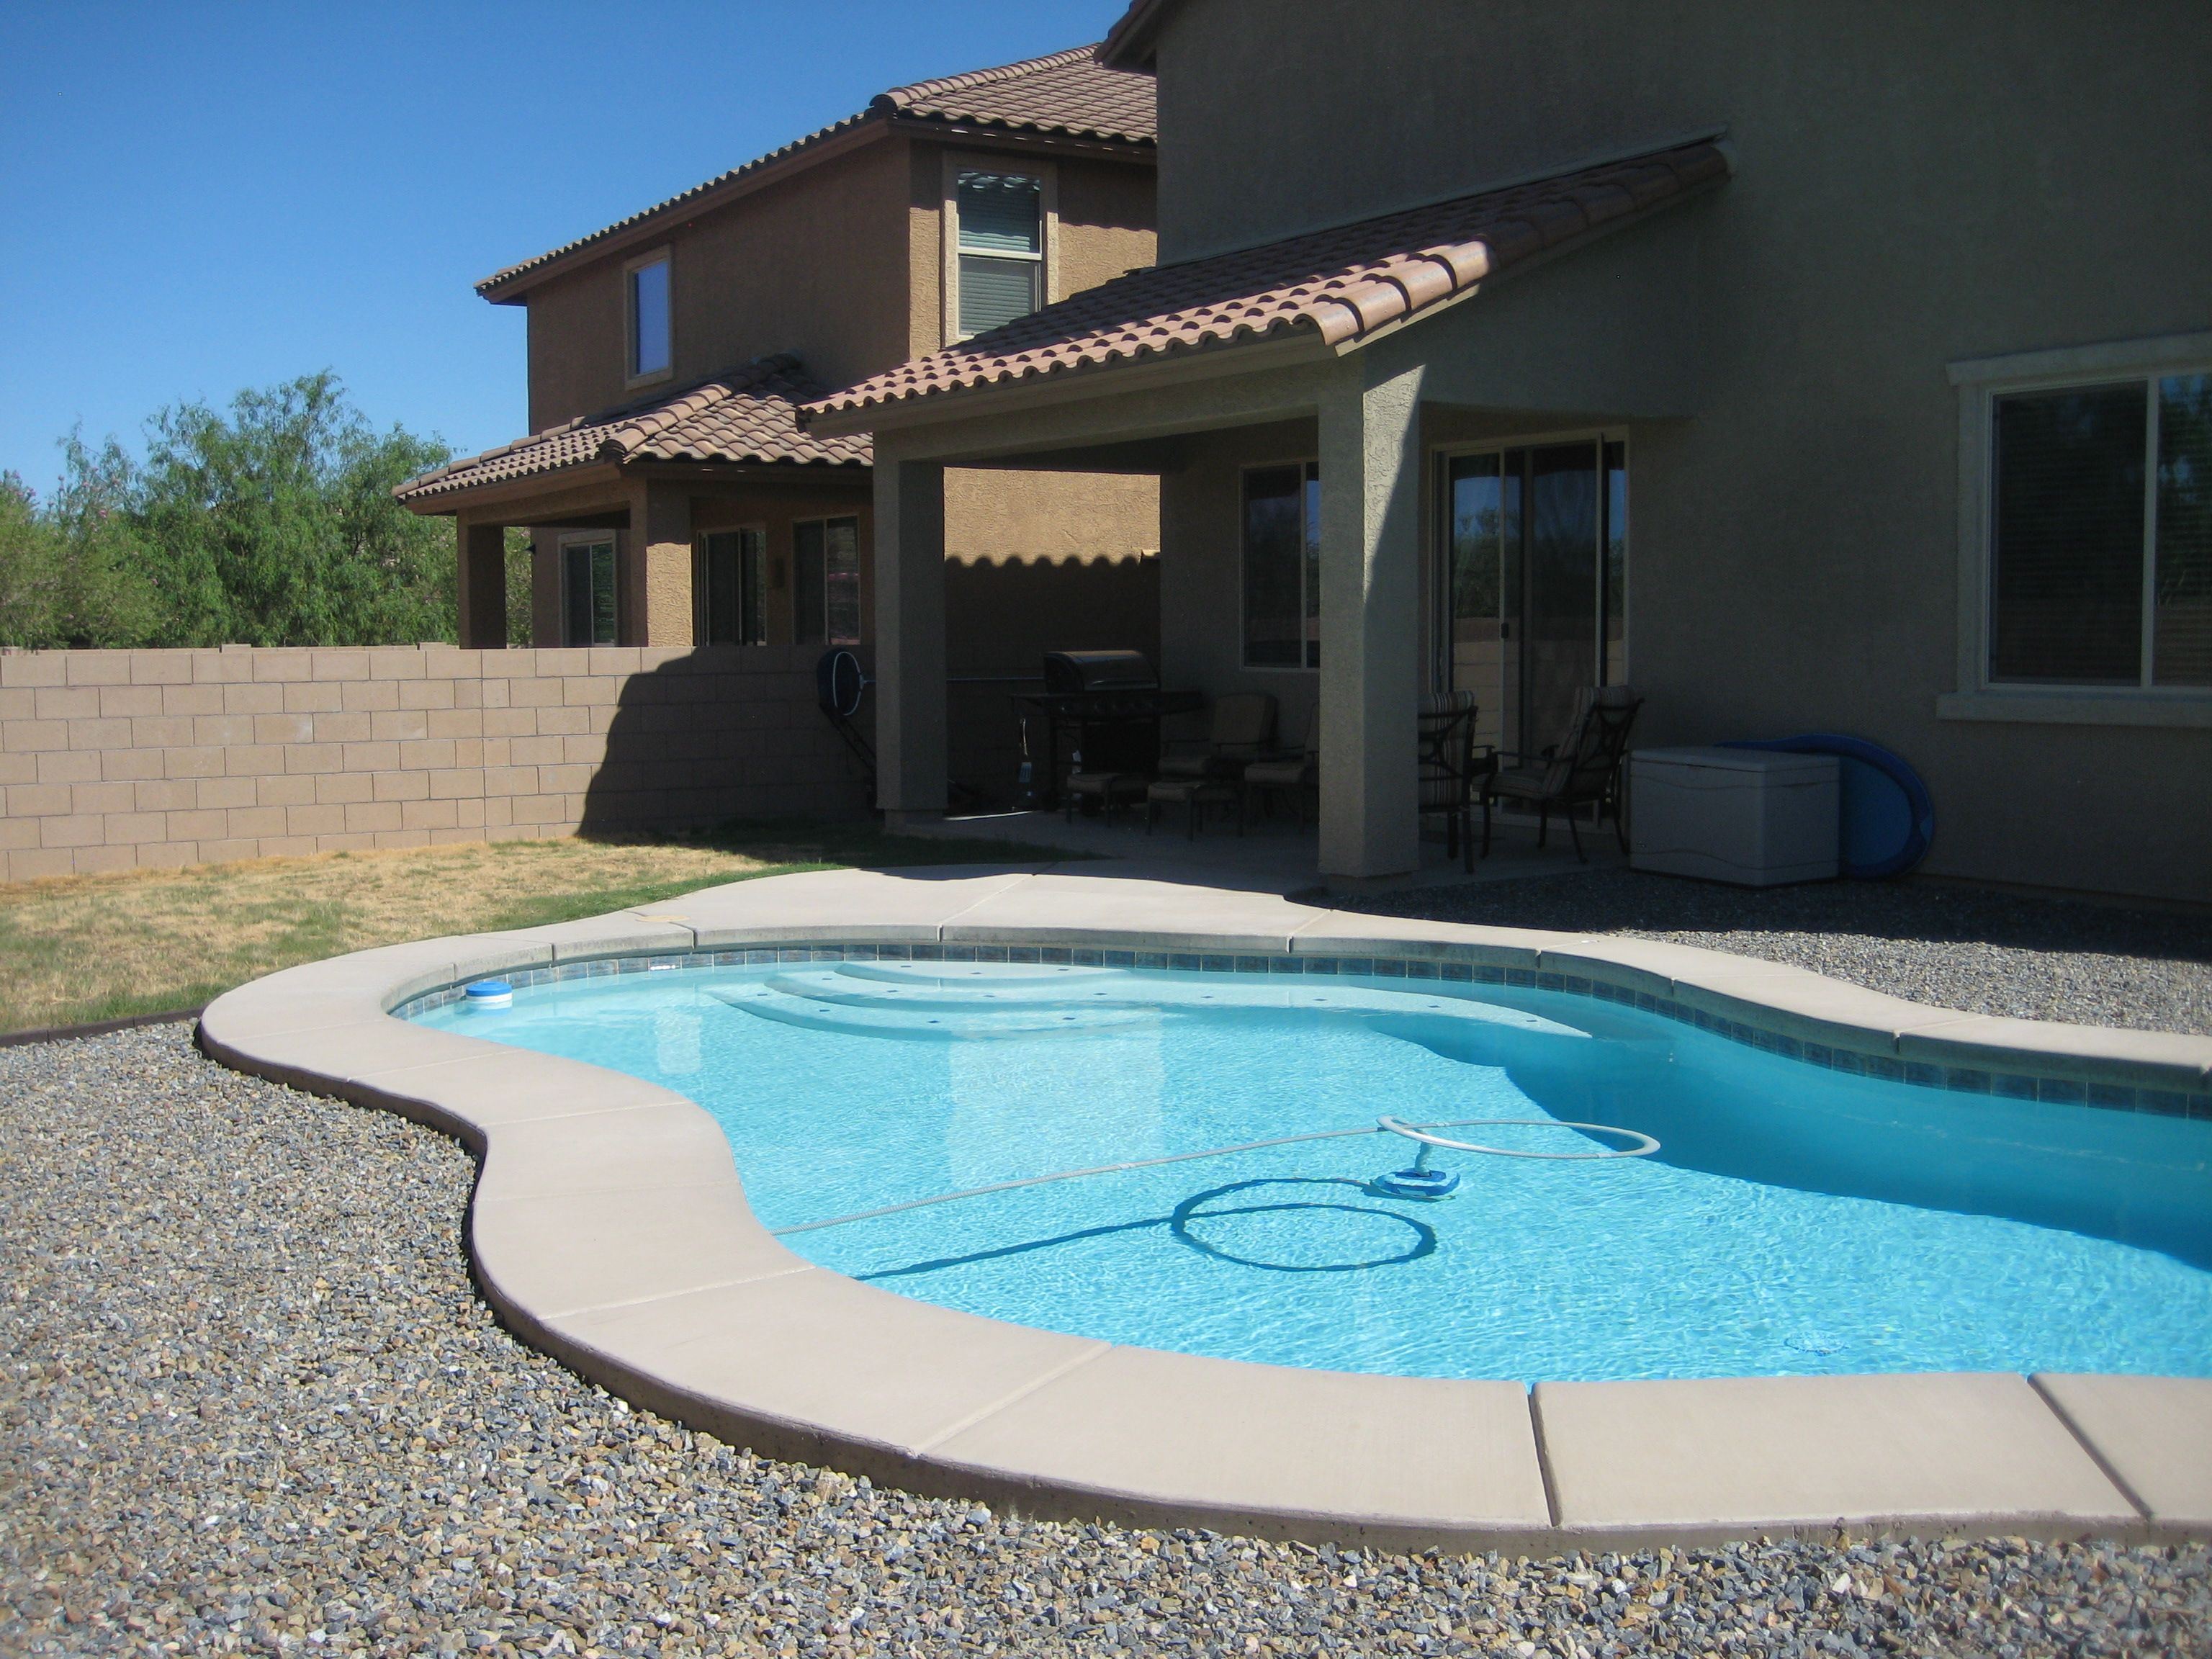 Marana Home Sales Affected By Decreasing Inventory